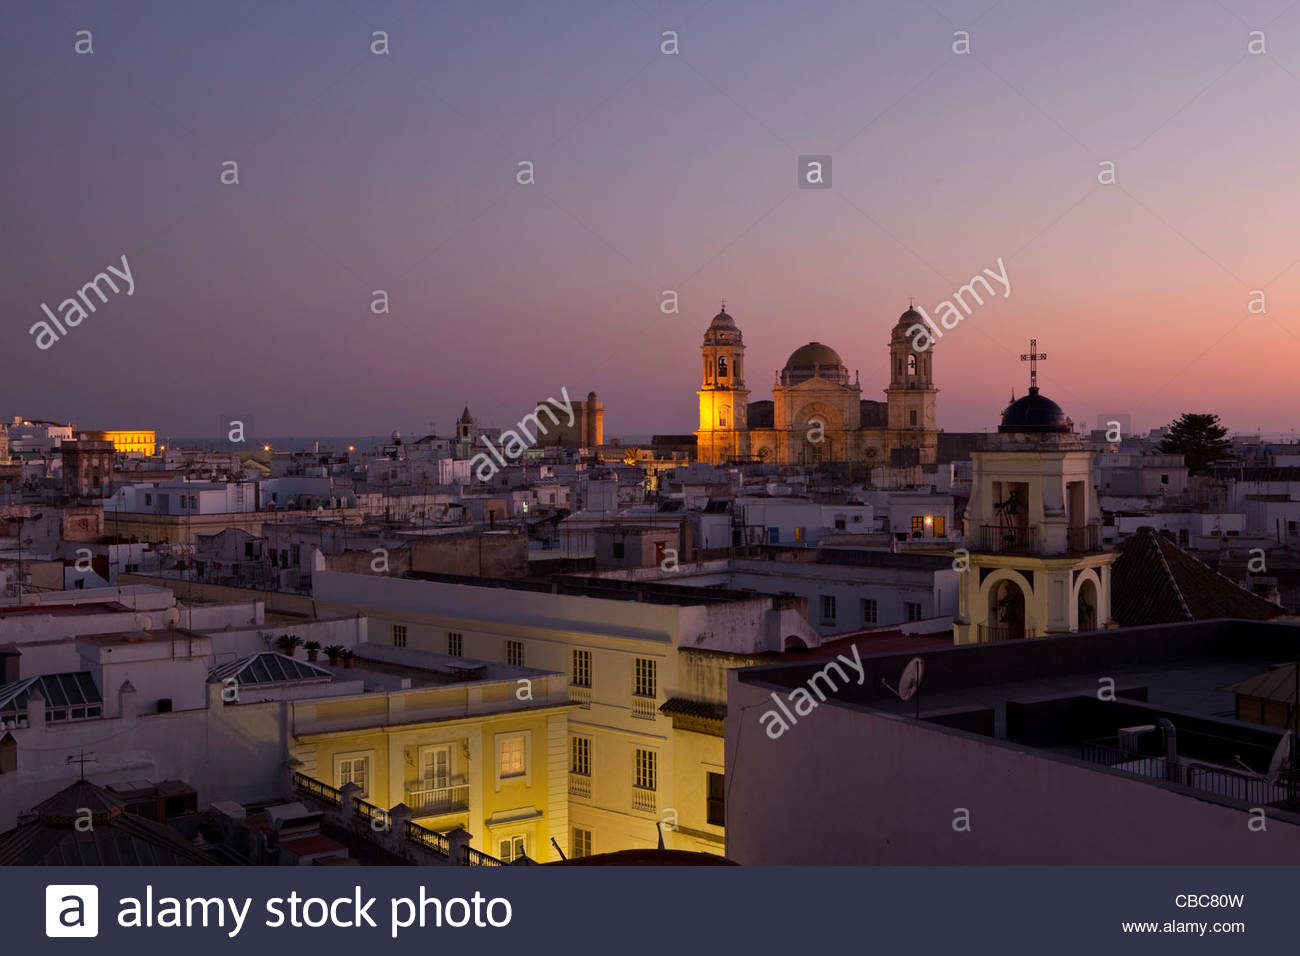 Aerial view of village rooftops at night - Stock Image